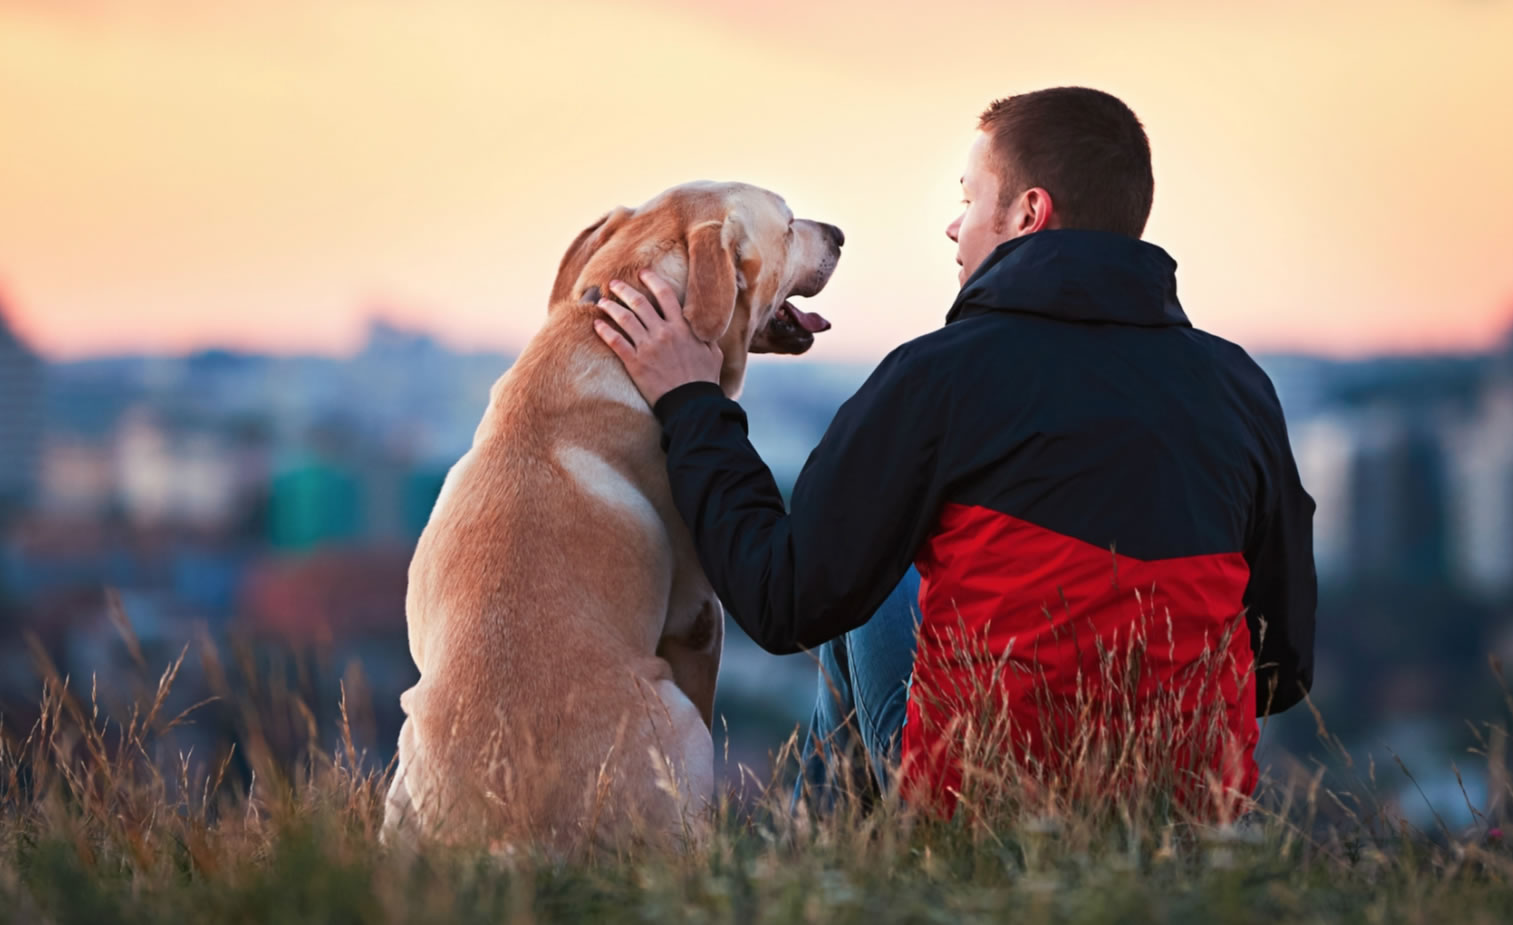 Man petting dog at sunset overlooking a town in distance